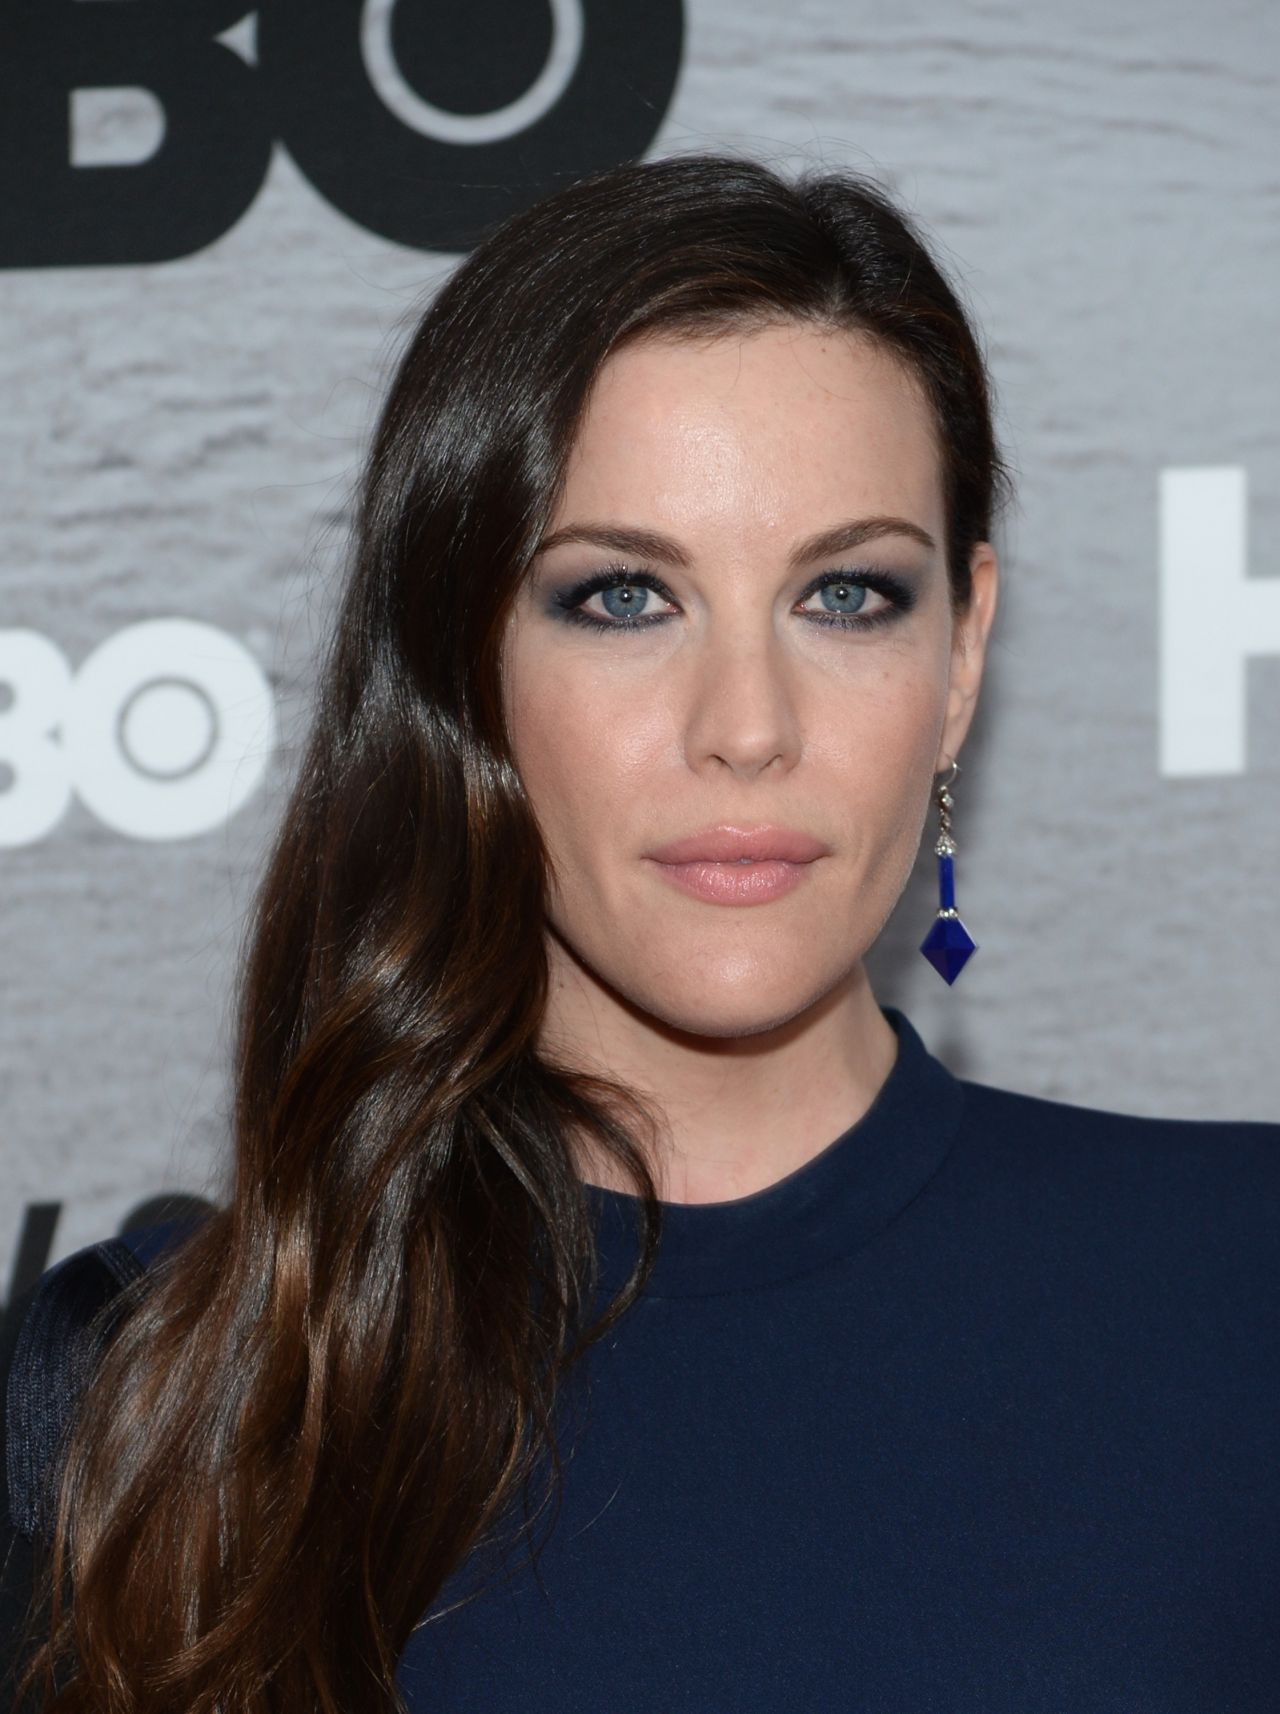 Liv Tyler – 'The Leftovers' Premiere in New York City Liv Tyler